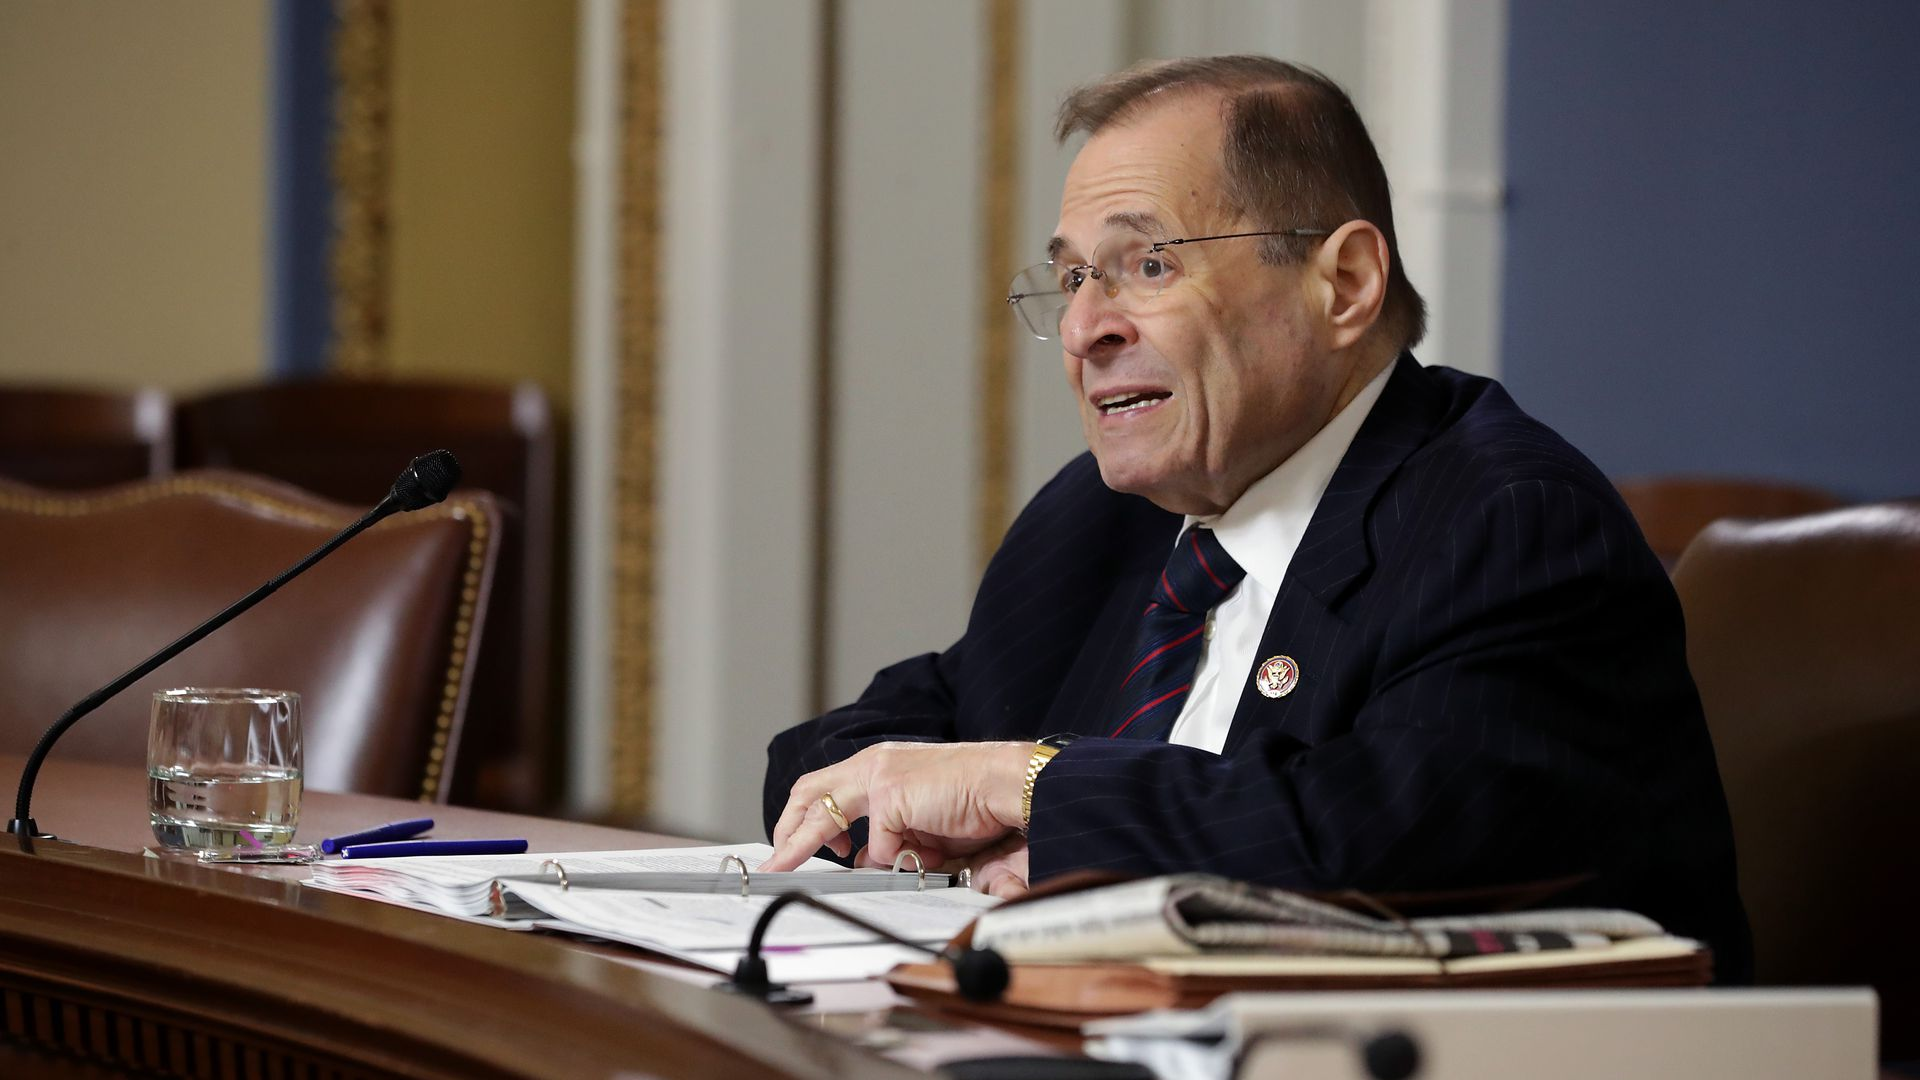 House Judiciary Committee Chairman Jerry Nadler reads the Mueller Report in the Rules Committee hearing room at the U.S. Capitol May 16, 2019 in Washington, DC.